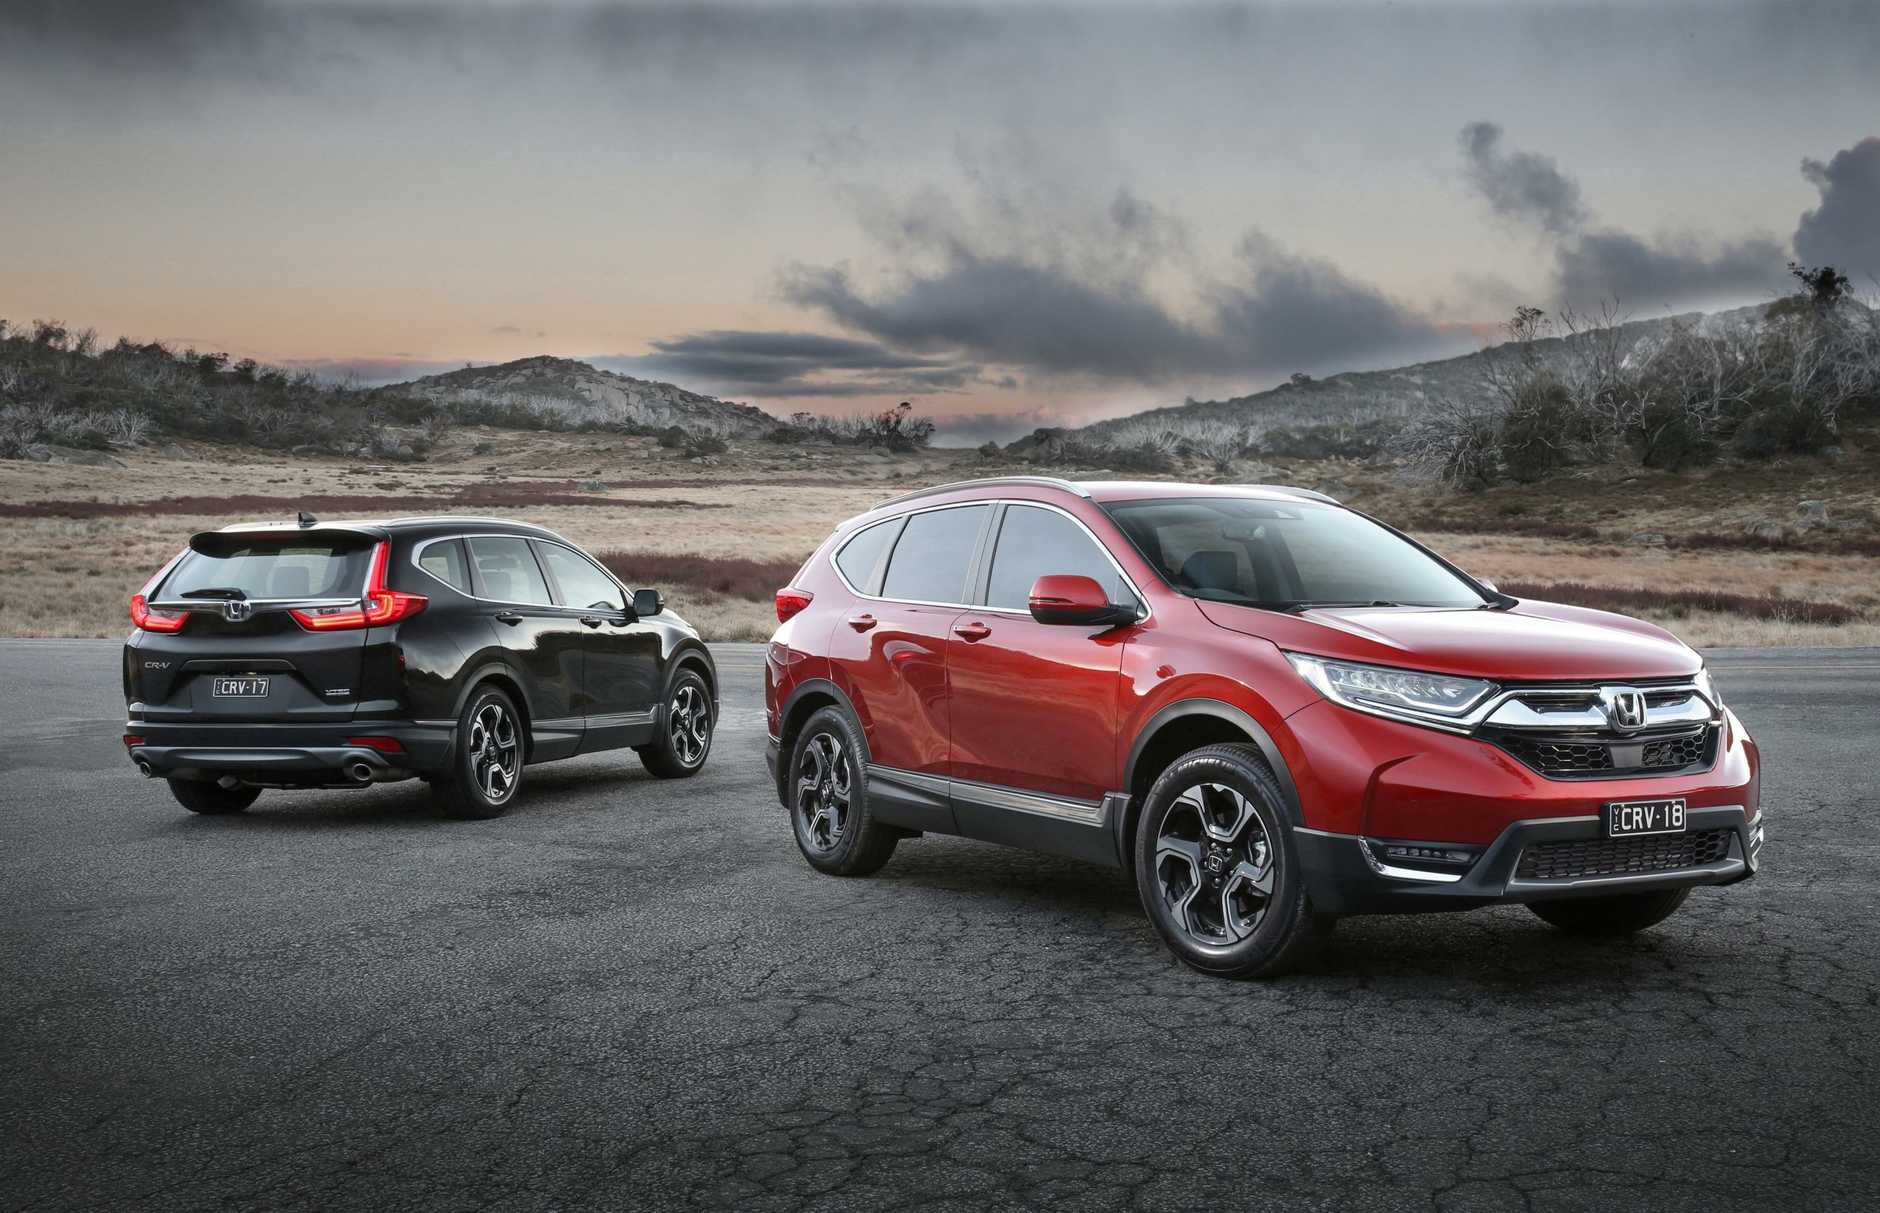 The 2017 Honda CR-V.